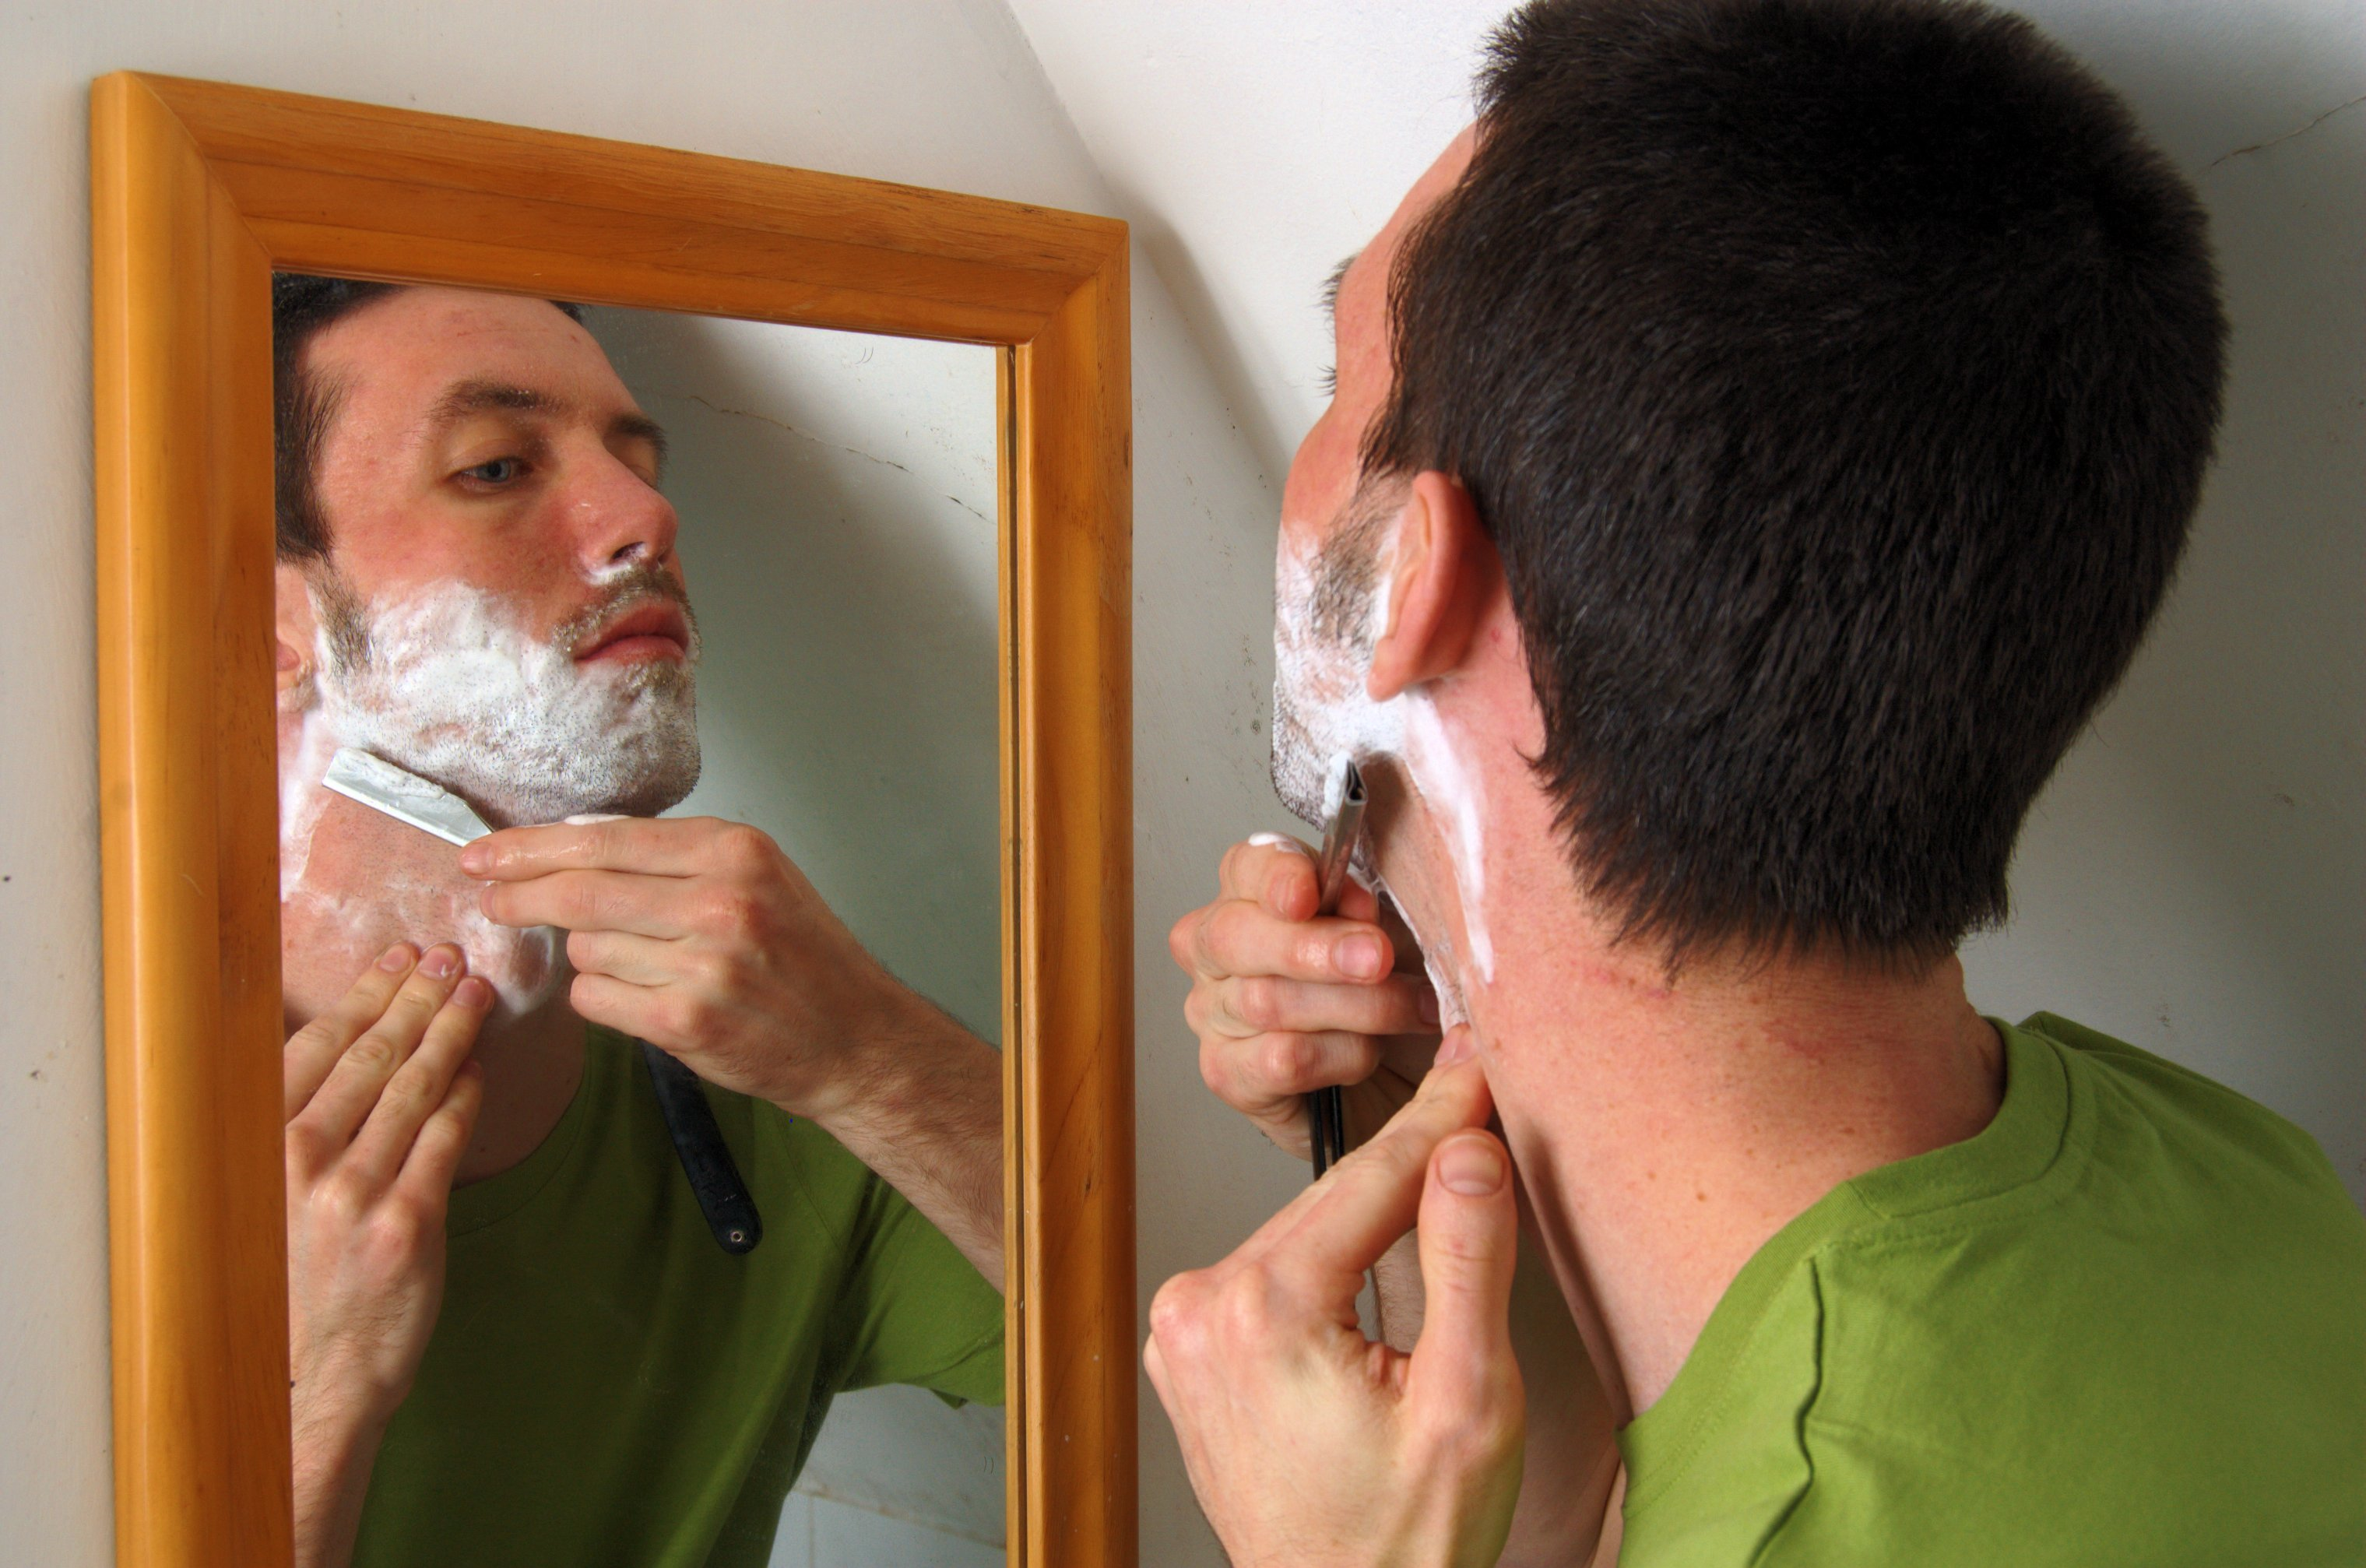 If you're a guy that focusing on how to look attractive, shaving or grooming your facial hair daily is an absolute must!